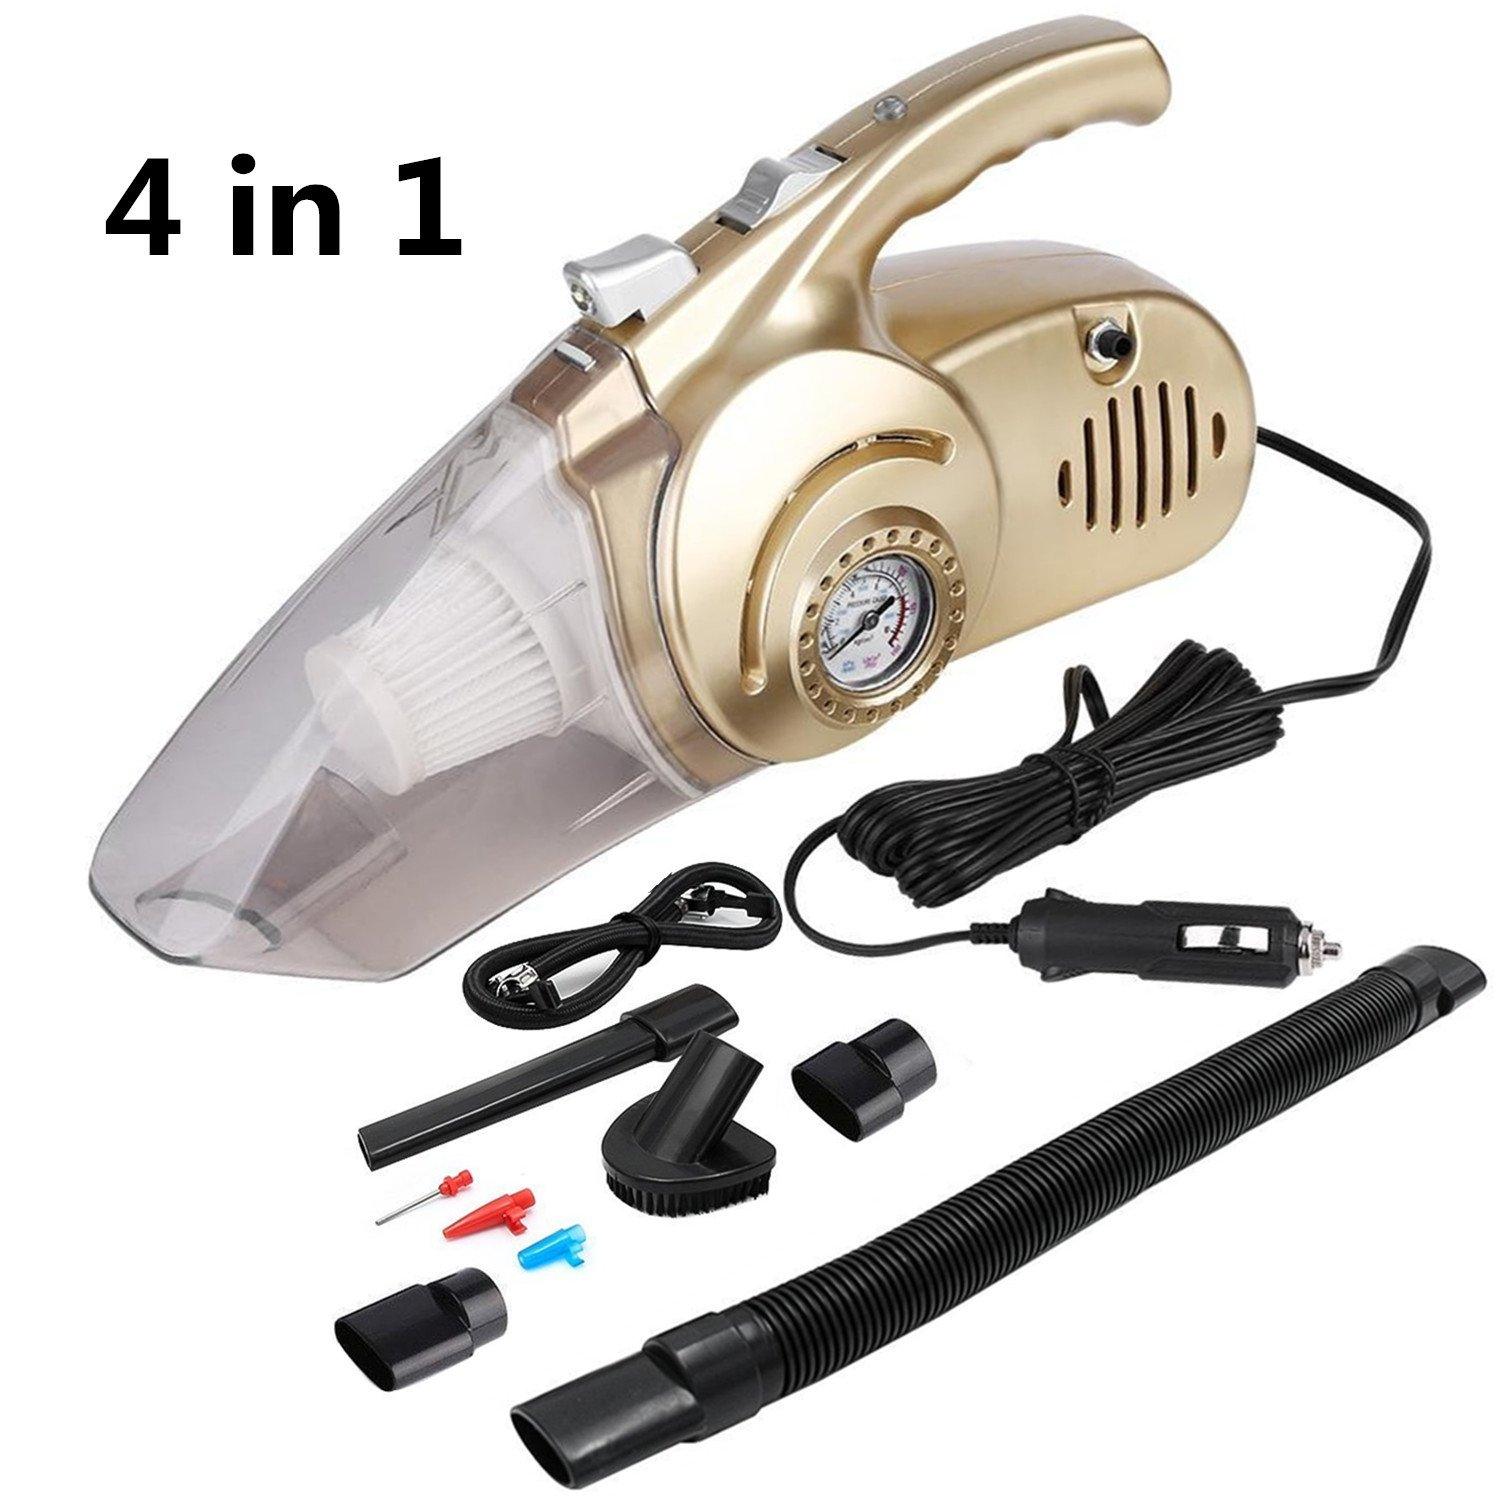 Starlotus 4 IN 1 Multifunctional Car Vacuum Cleaner with Tire Inflation Pump & Air Pressure Tire Gauge & LED Lighting,DC12V 120W Stainless Steel HEPA Filter 16.4ft Power Cord for Handheld Wet&Dry Use